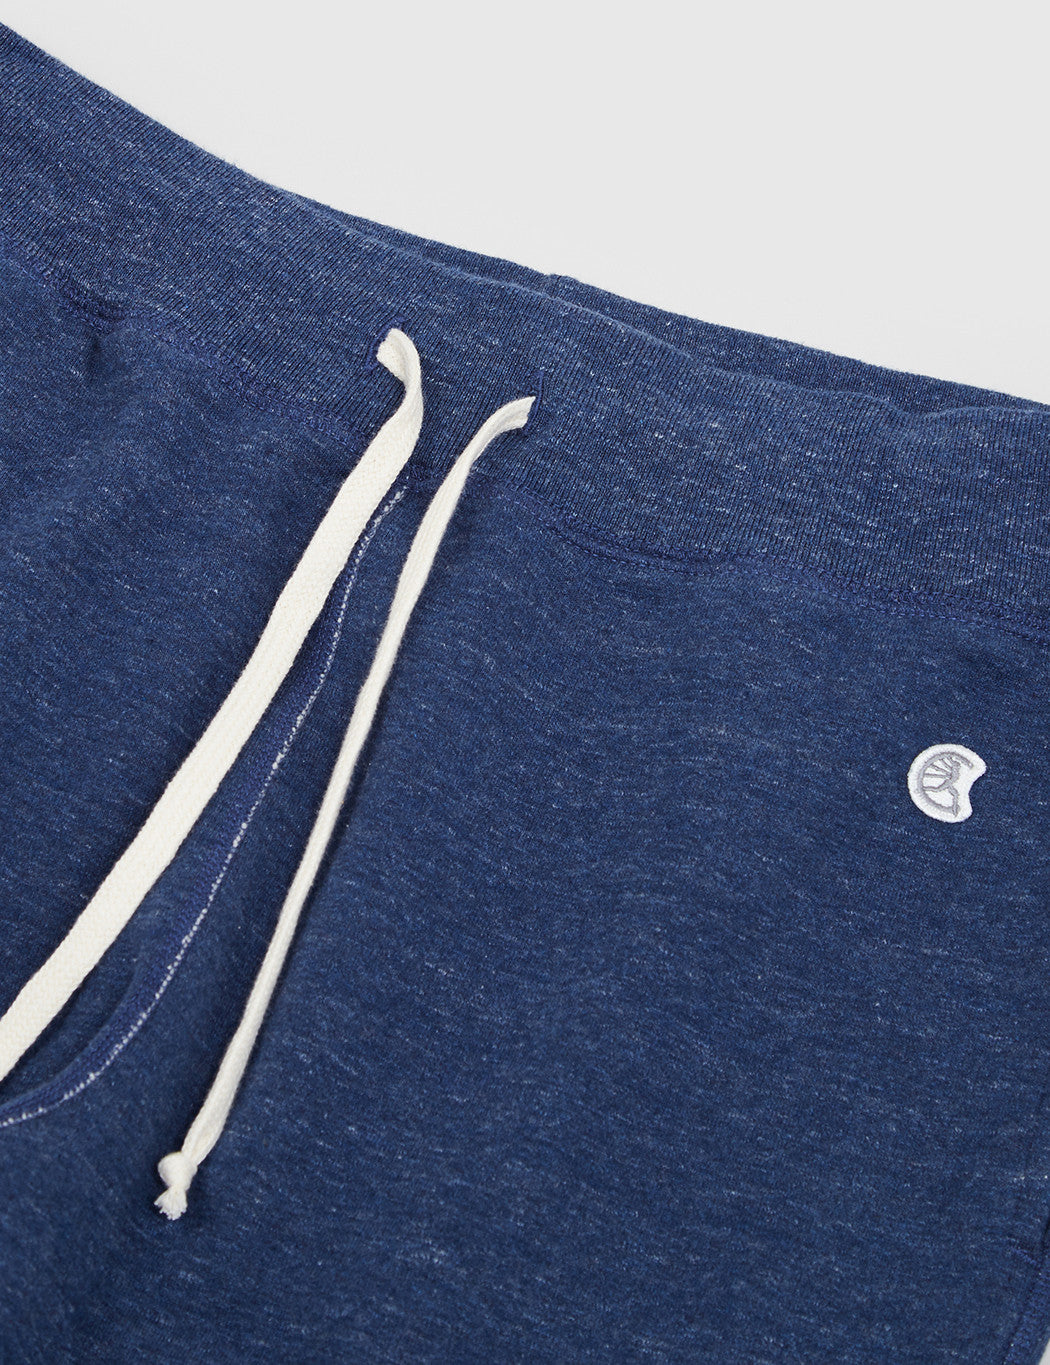 Champion x Todd Snyder Pant - Indigo Heather